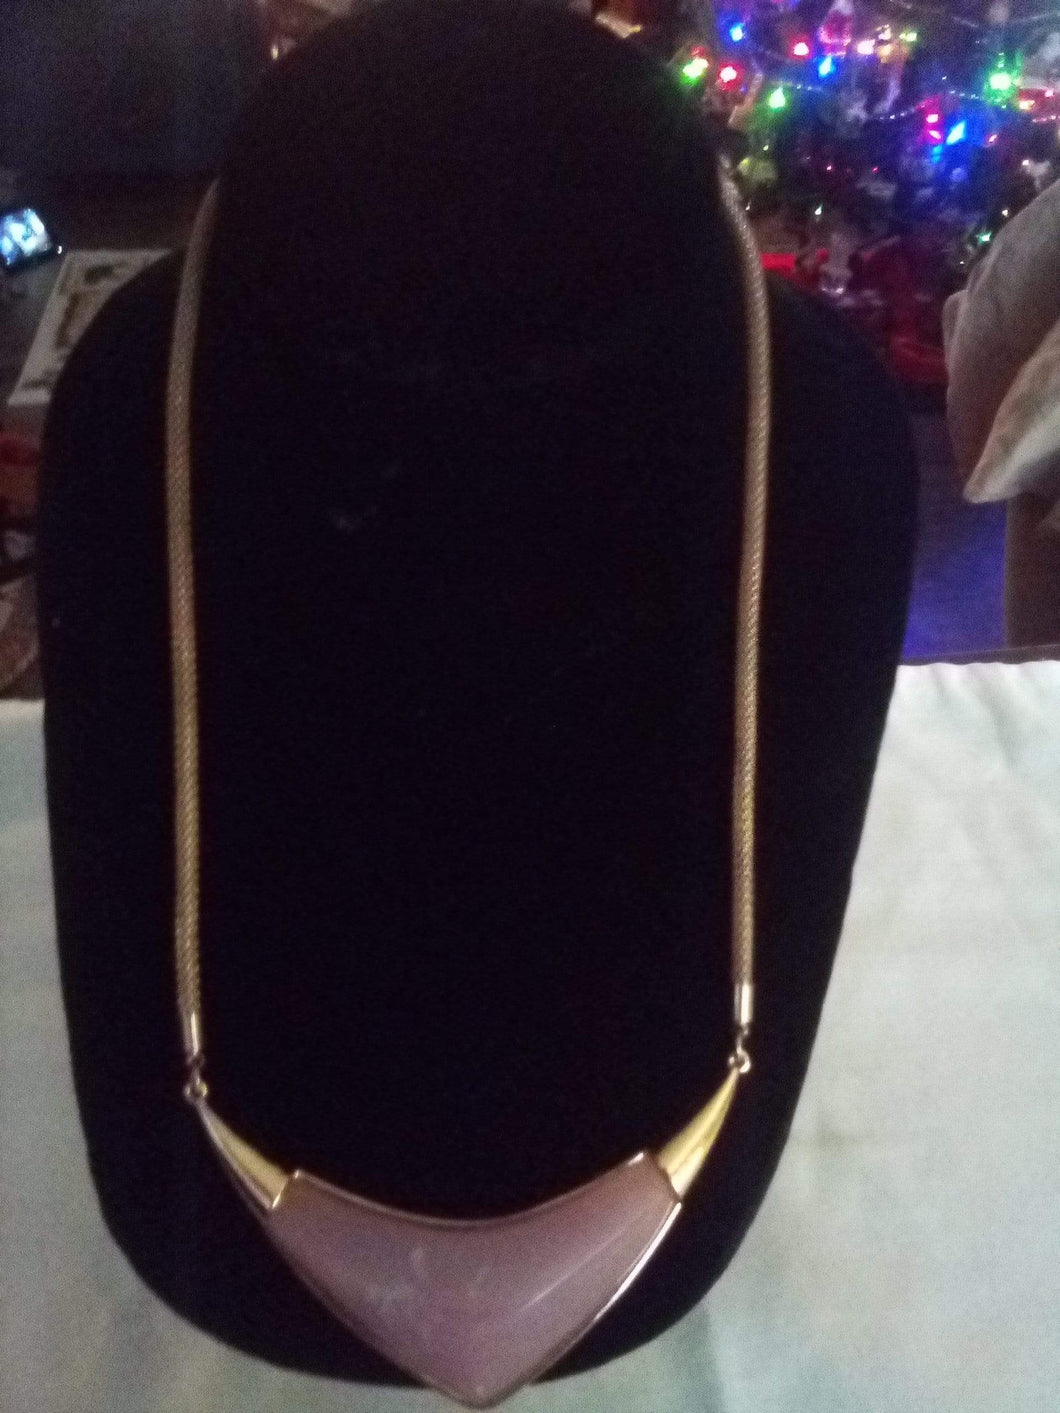 Stunning pretty necklace with attached pendent - B&P'sringsnthings